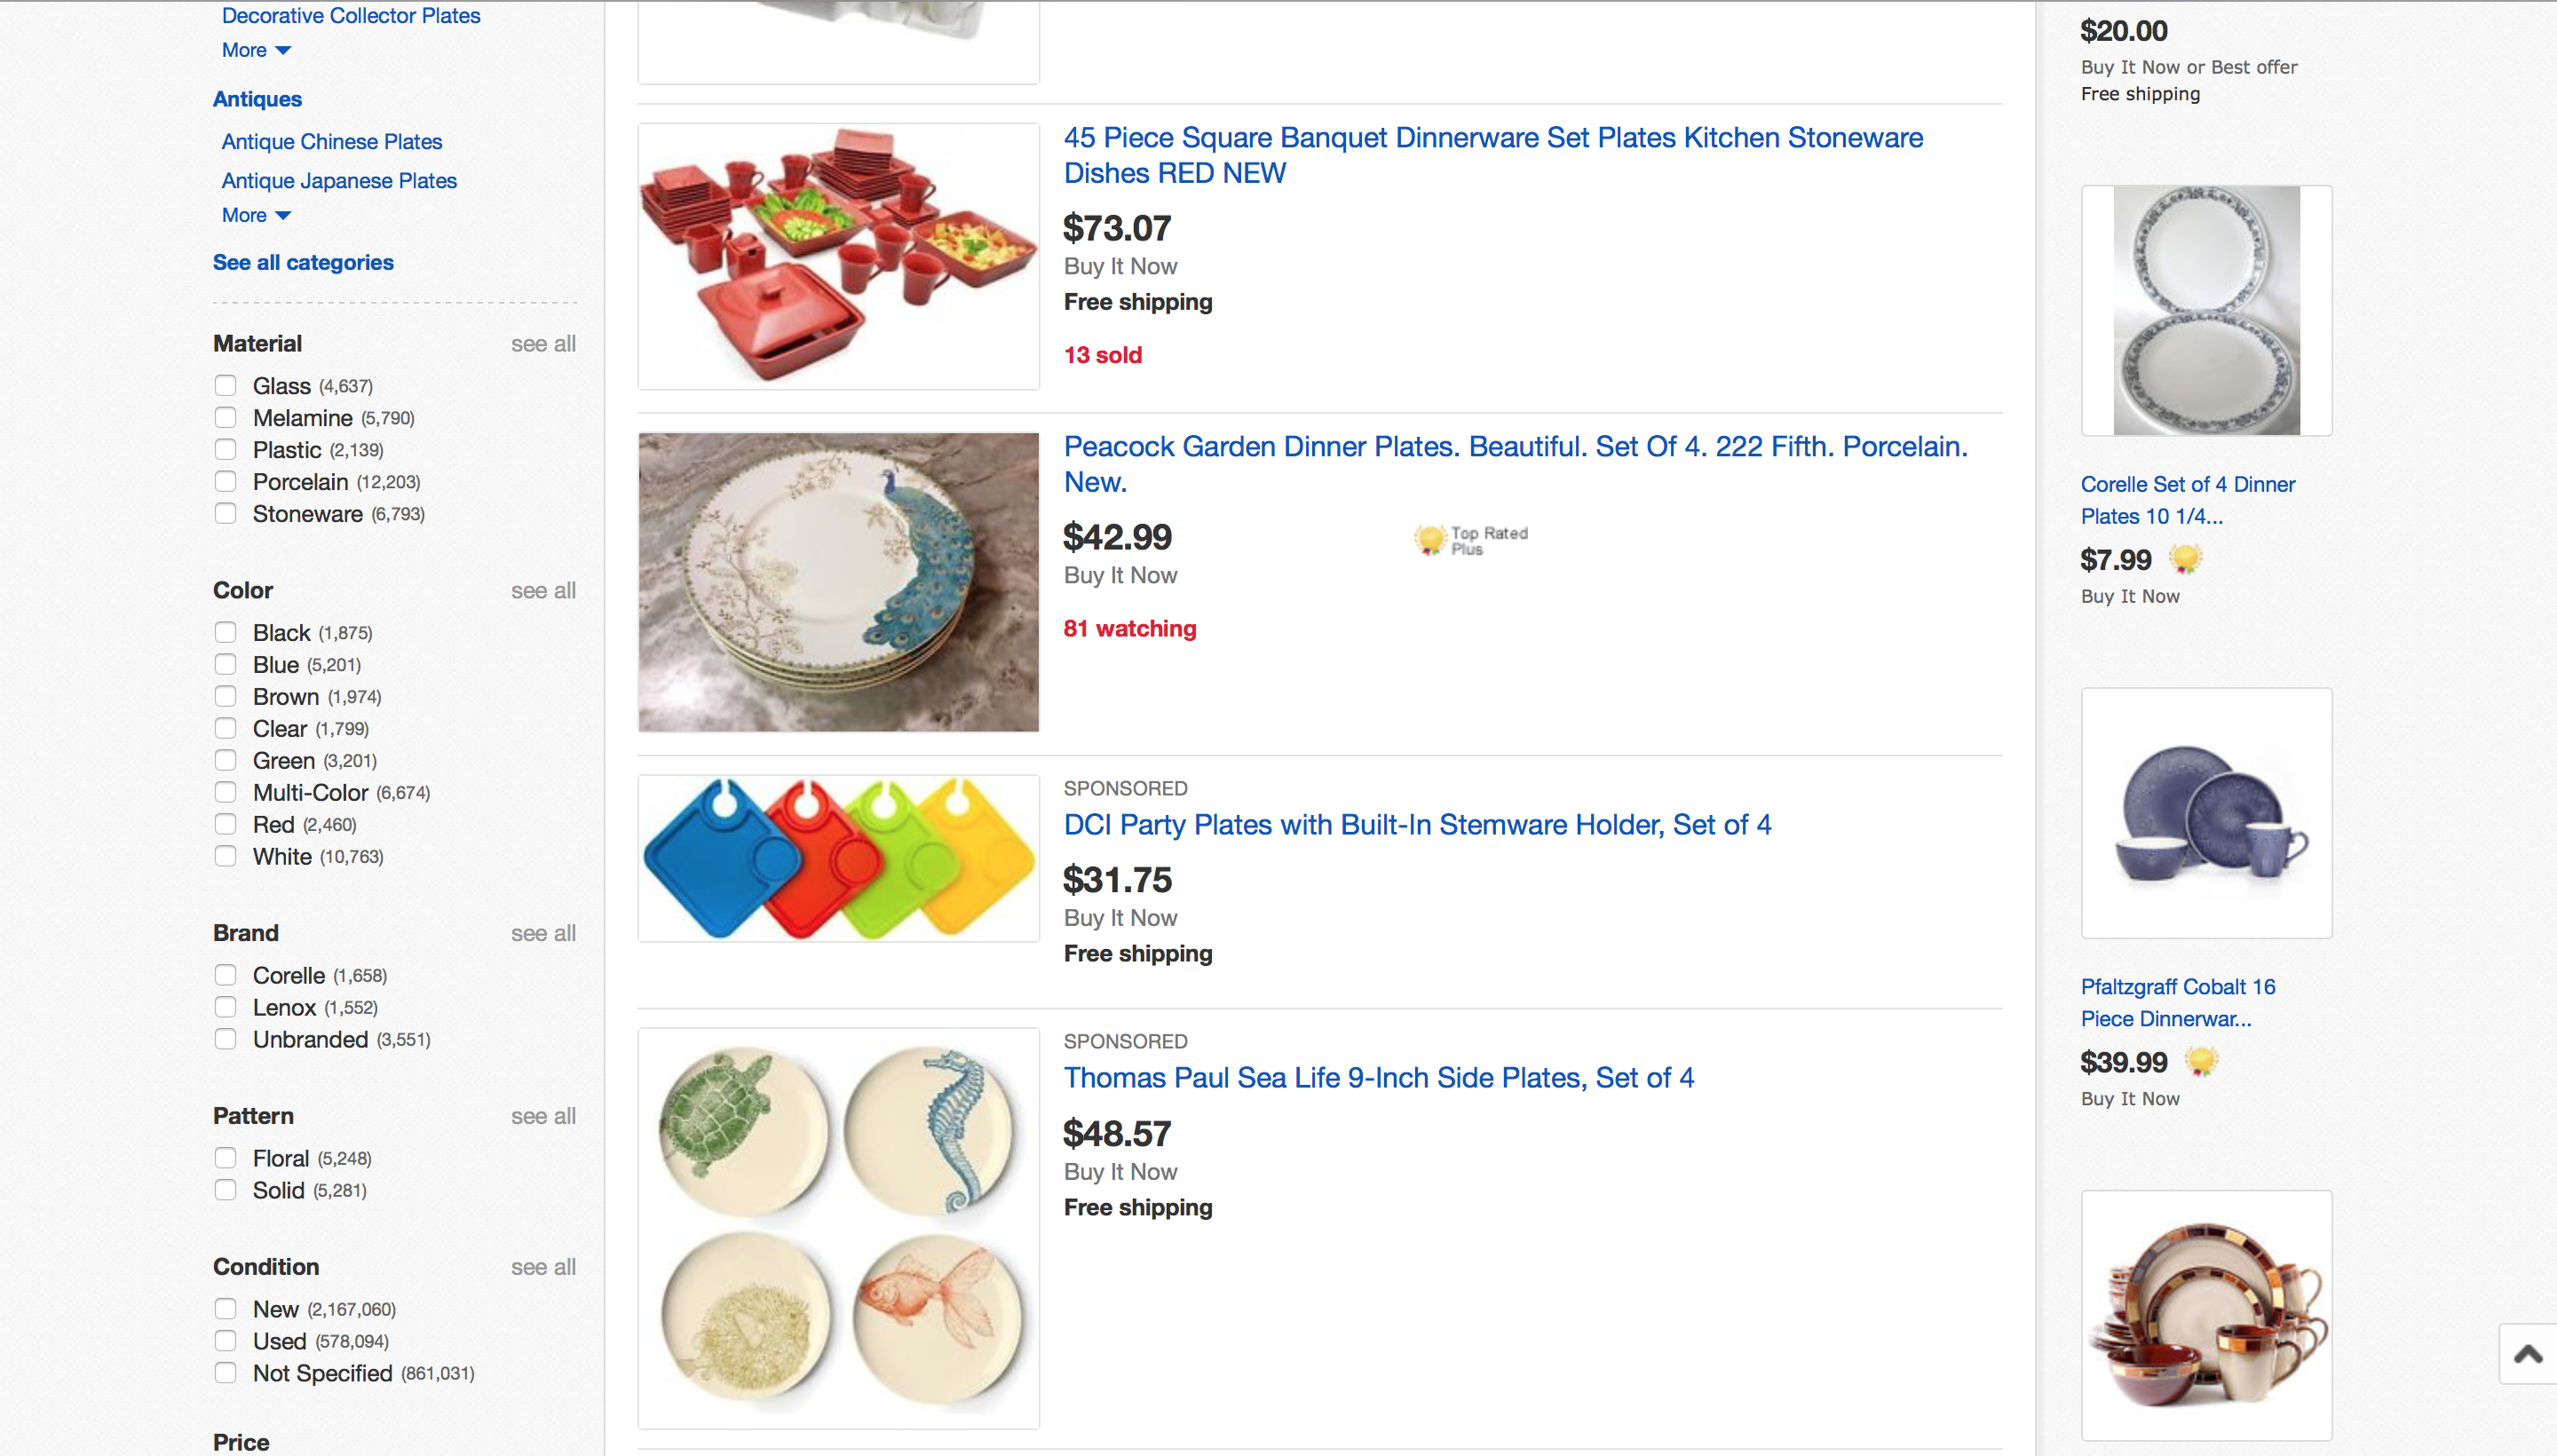 Leave A Lasting Impression With Ebay Branded Shipping Supplies Now That  You Have Access To The Ebay Branded Supplies Shipping Coupon Use It To Add  More